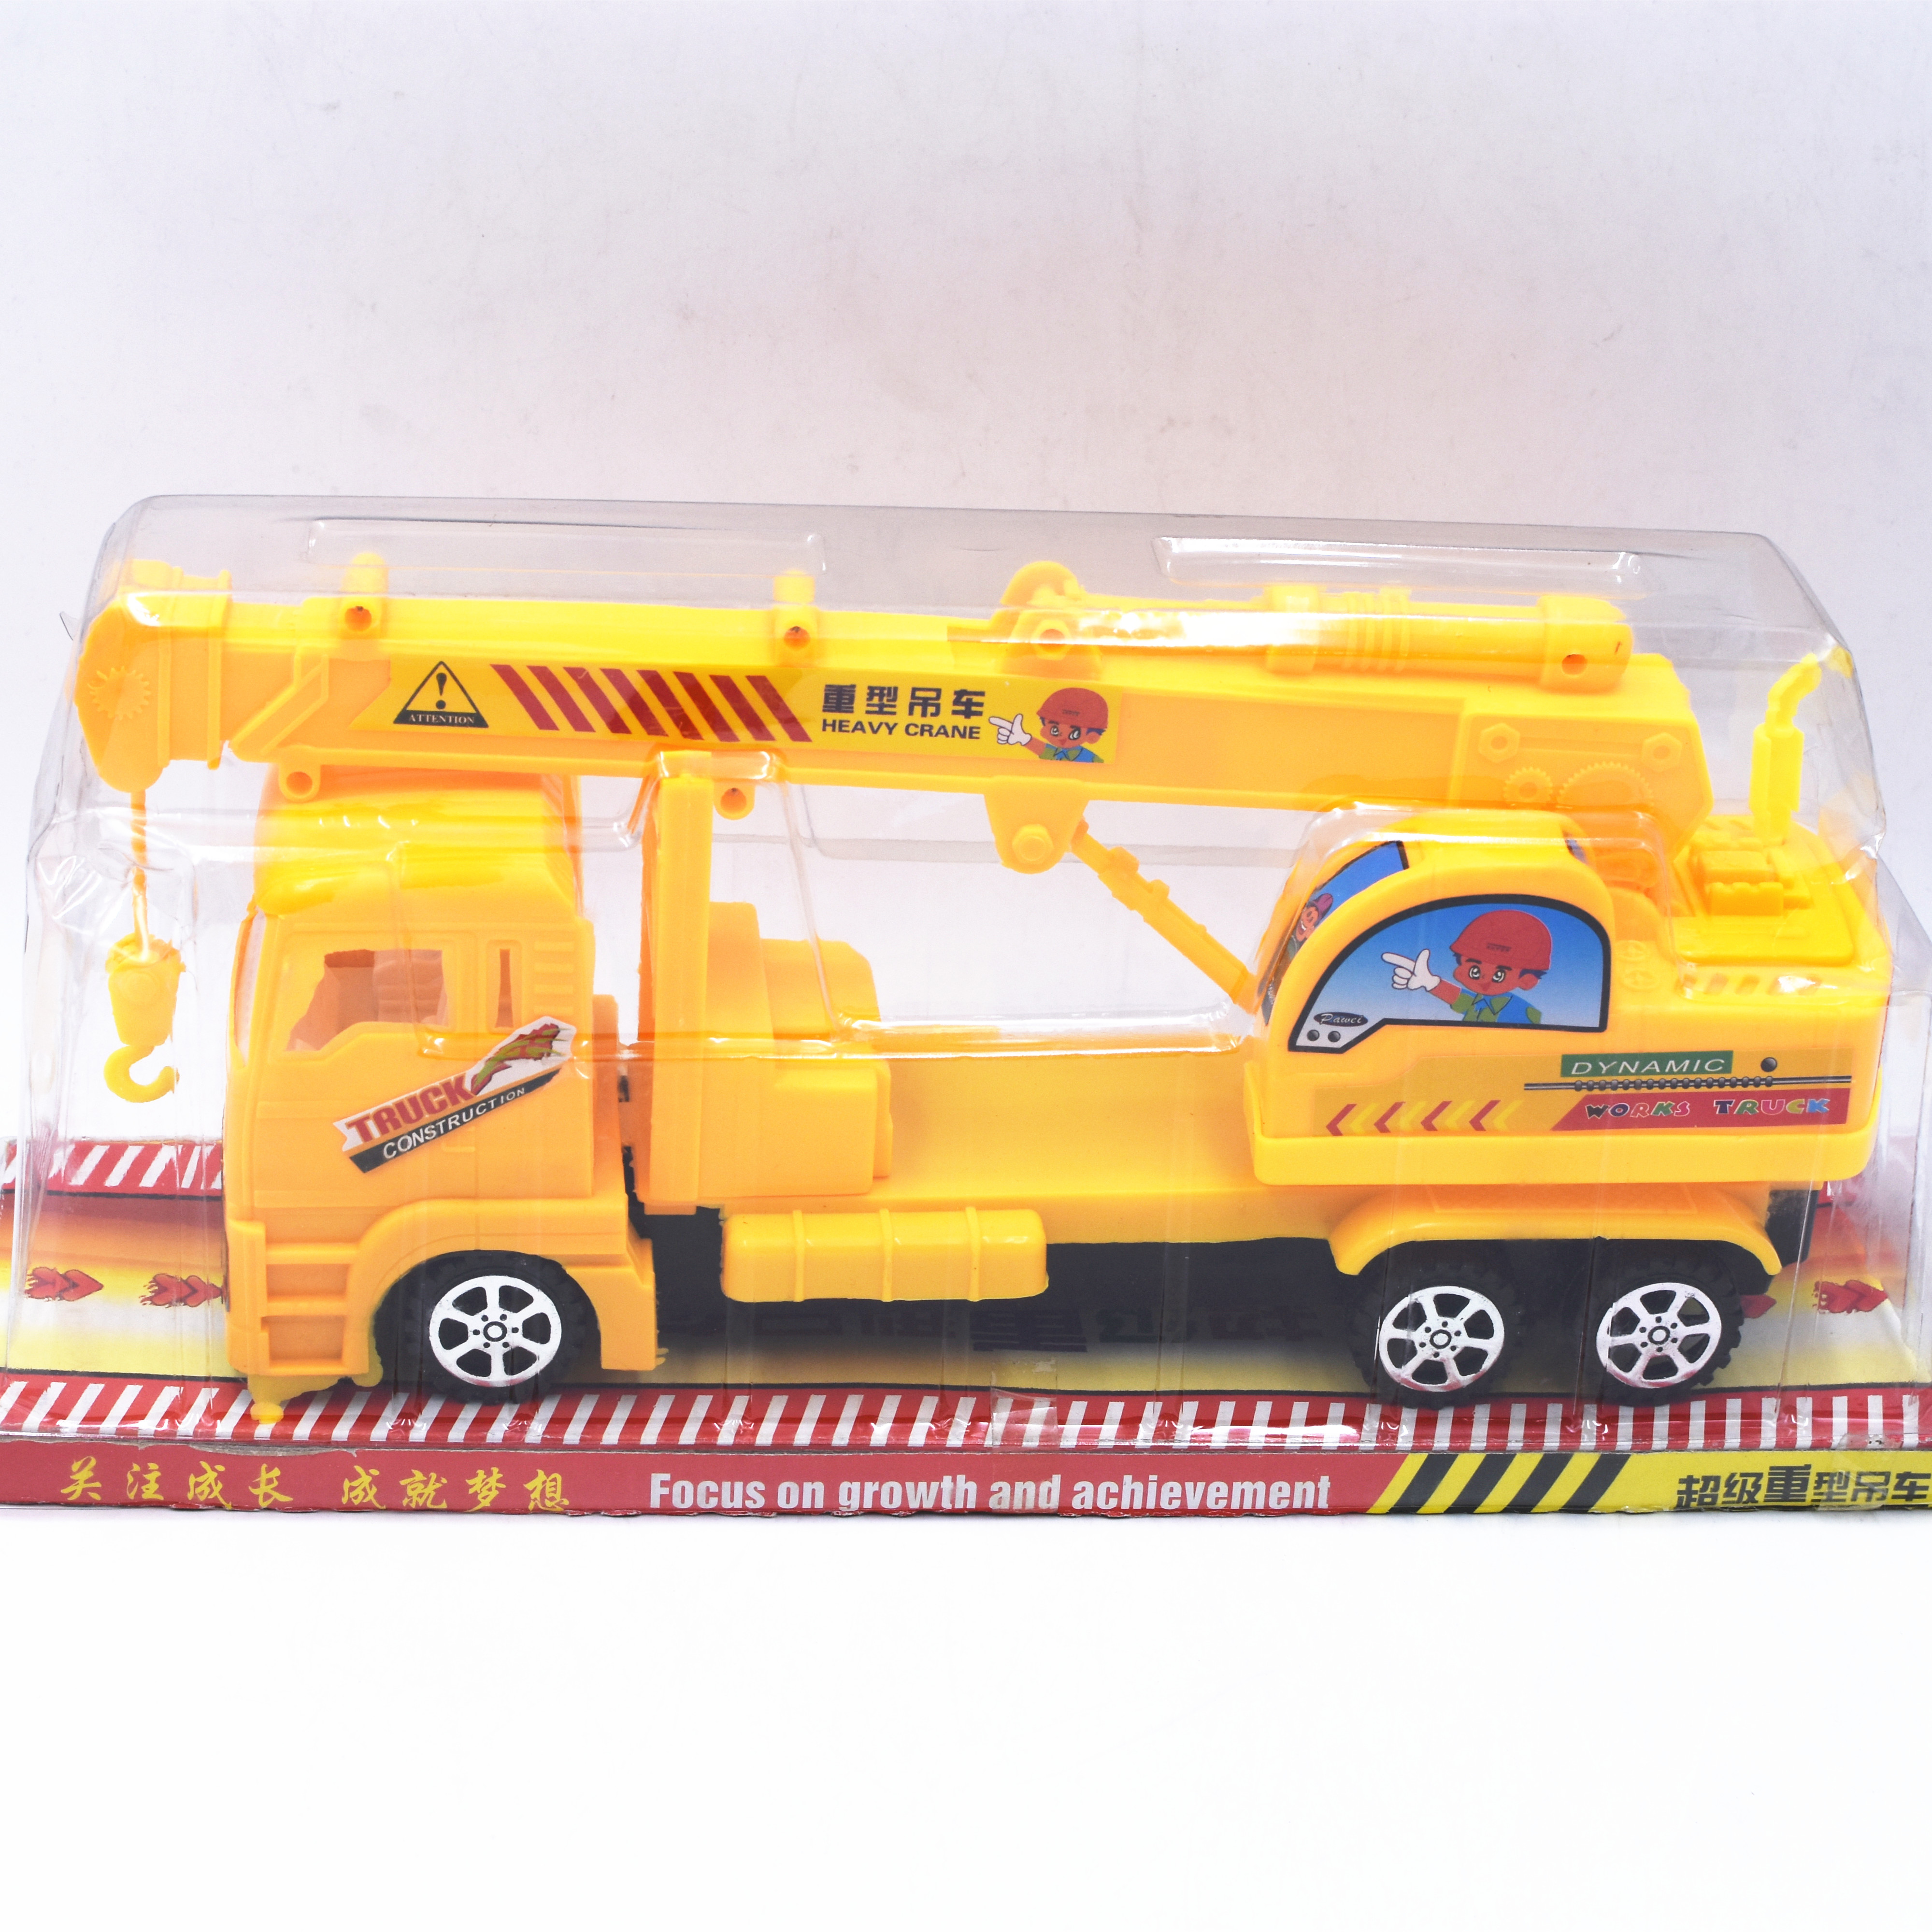 FREE WHEEL TRUCK TOY LY1818